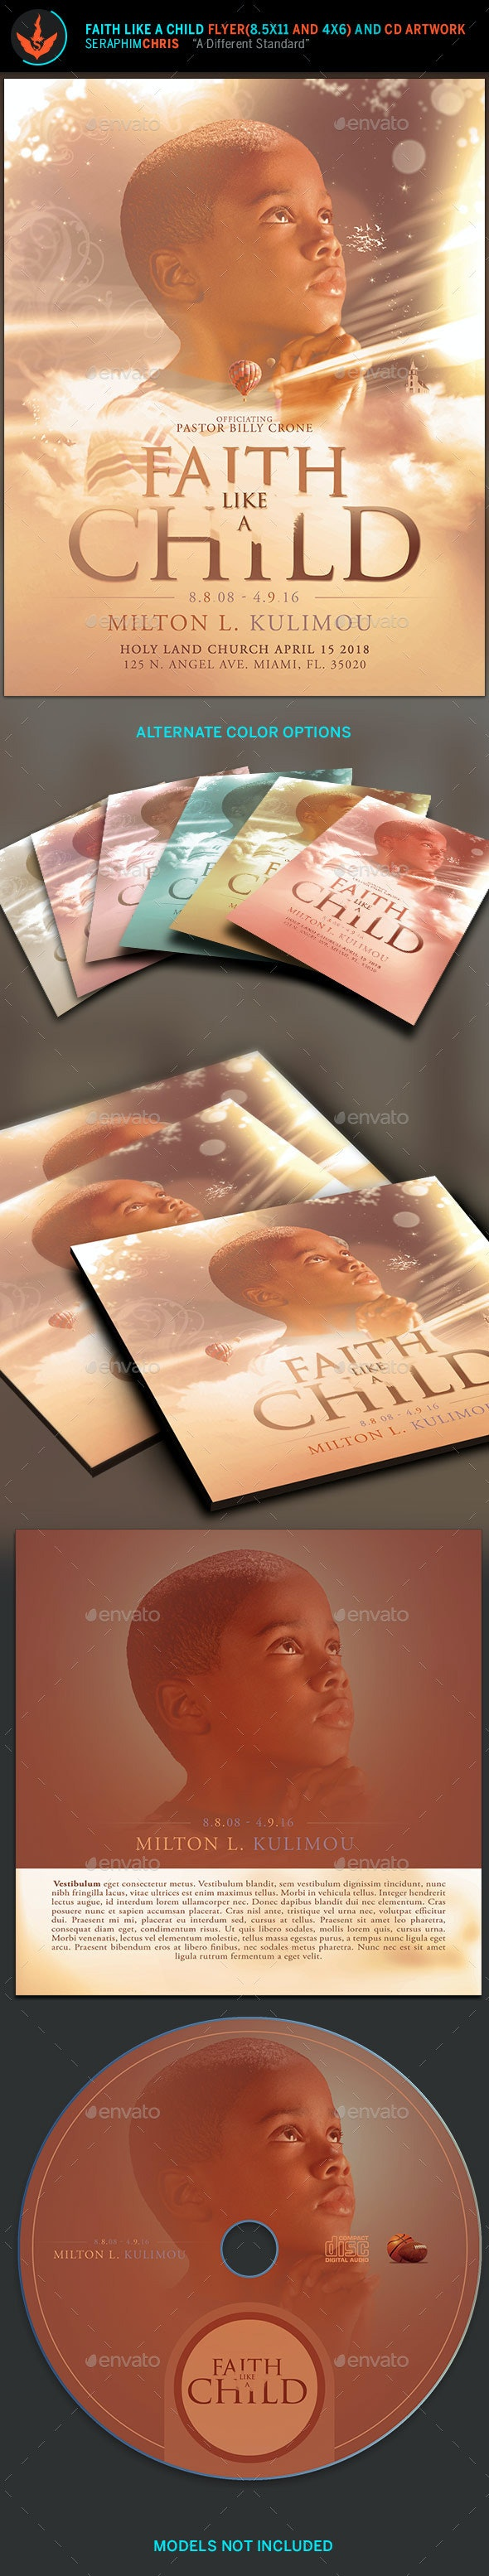 Faith like a Child Flyer and CD Artwork Template - Church Flyers